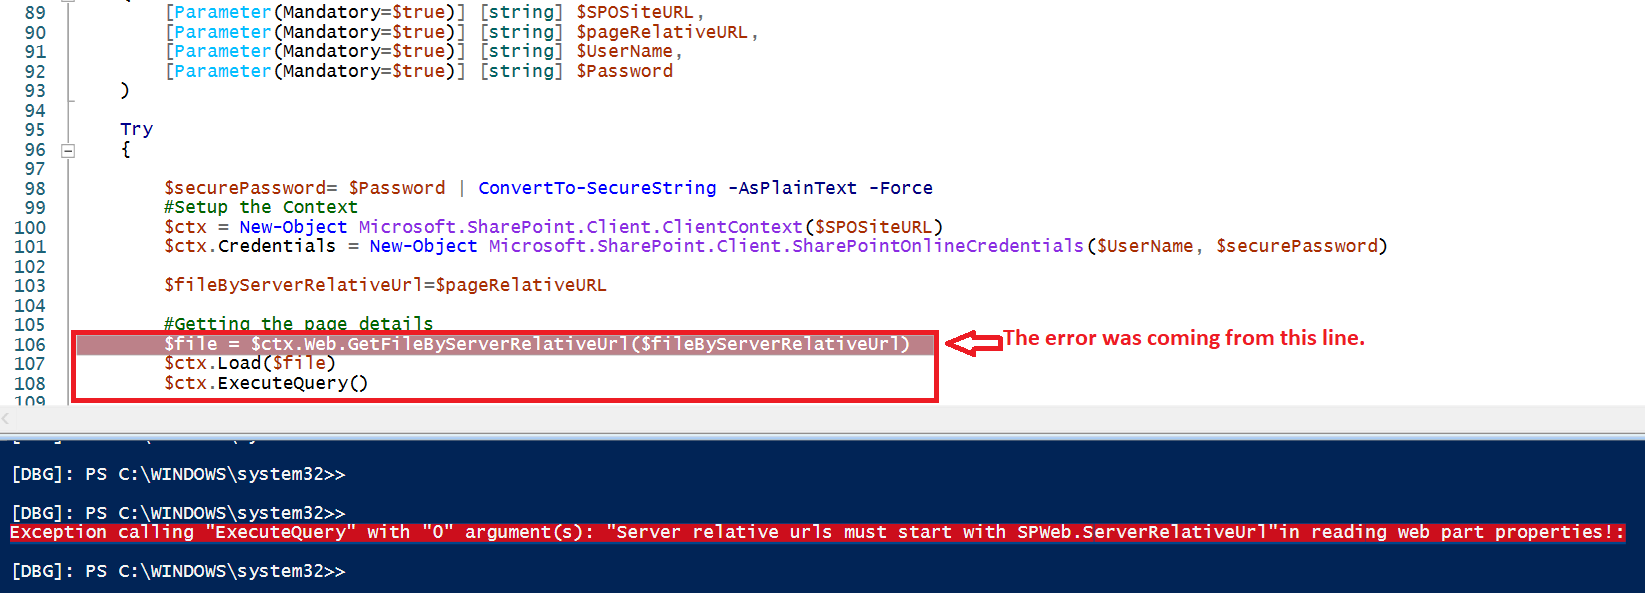 """Server relative urls must start with SPWeb.ServerRelativeUrl""in reading web part properties!:"